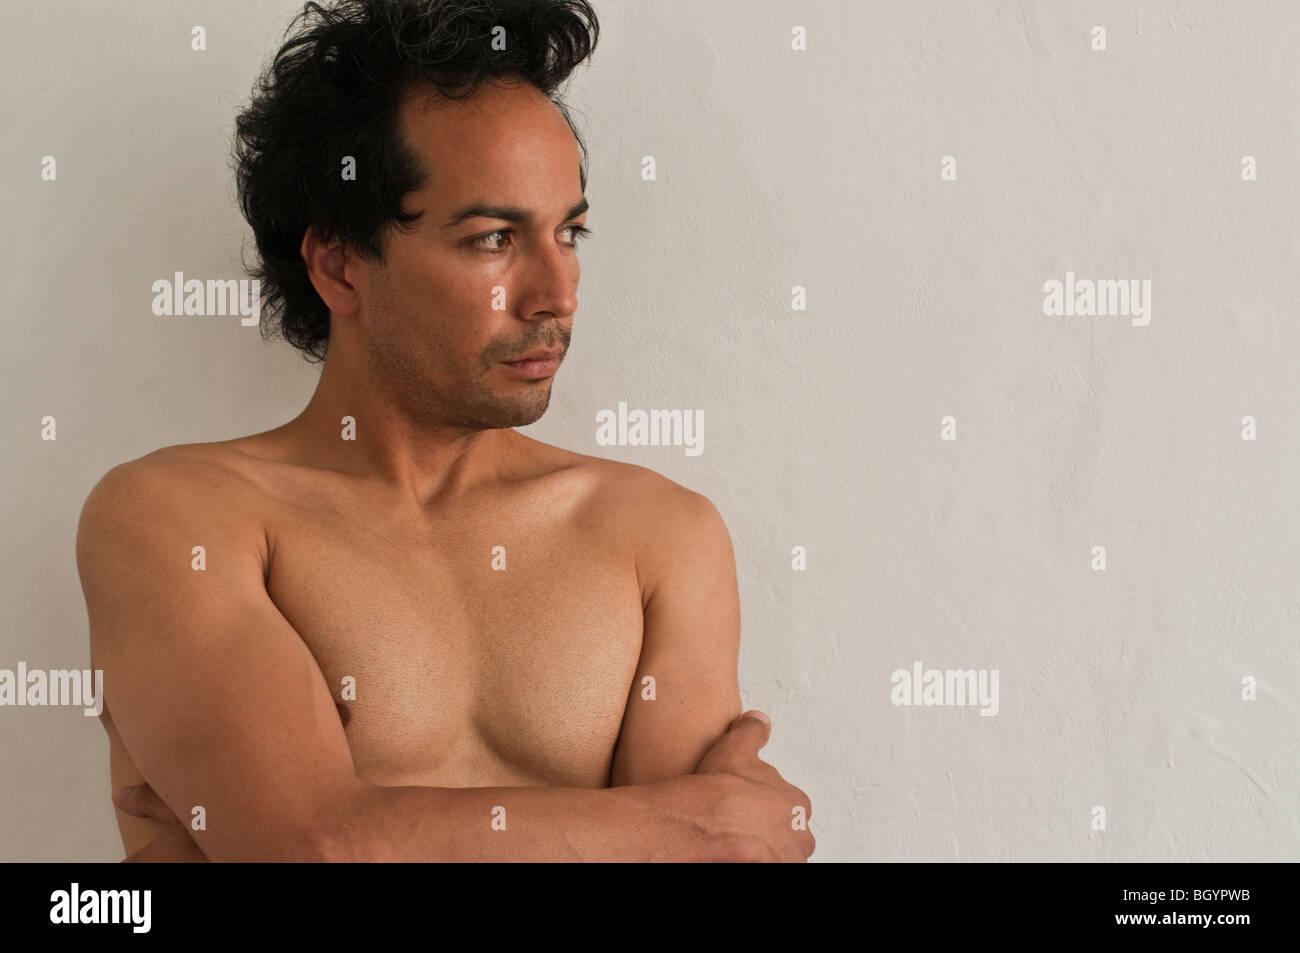 Hunky nude Latino male with arms crossed